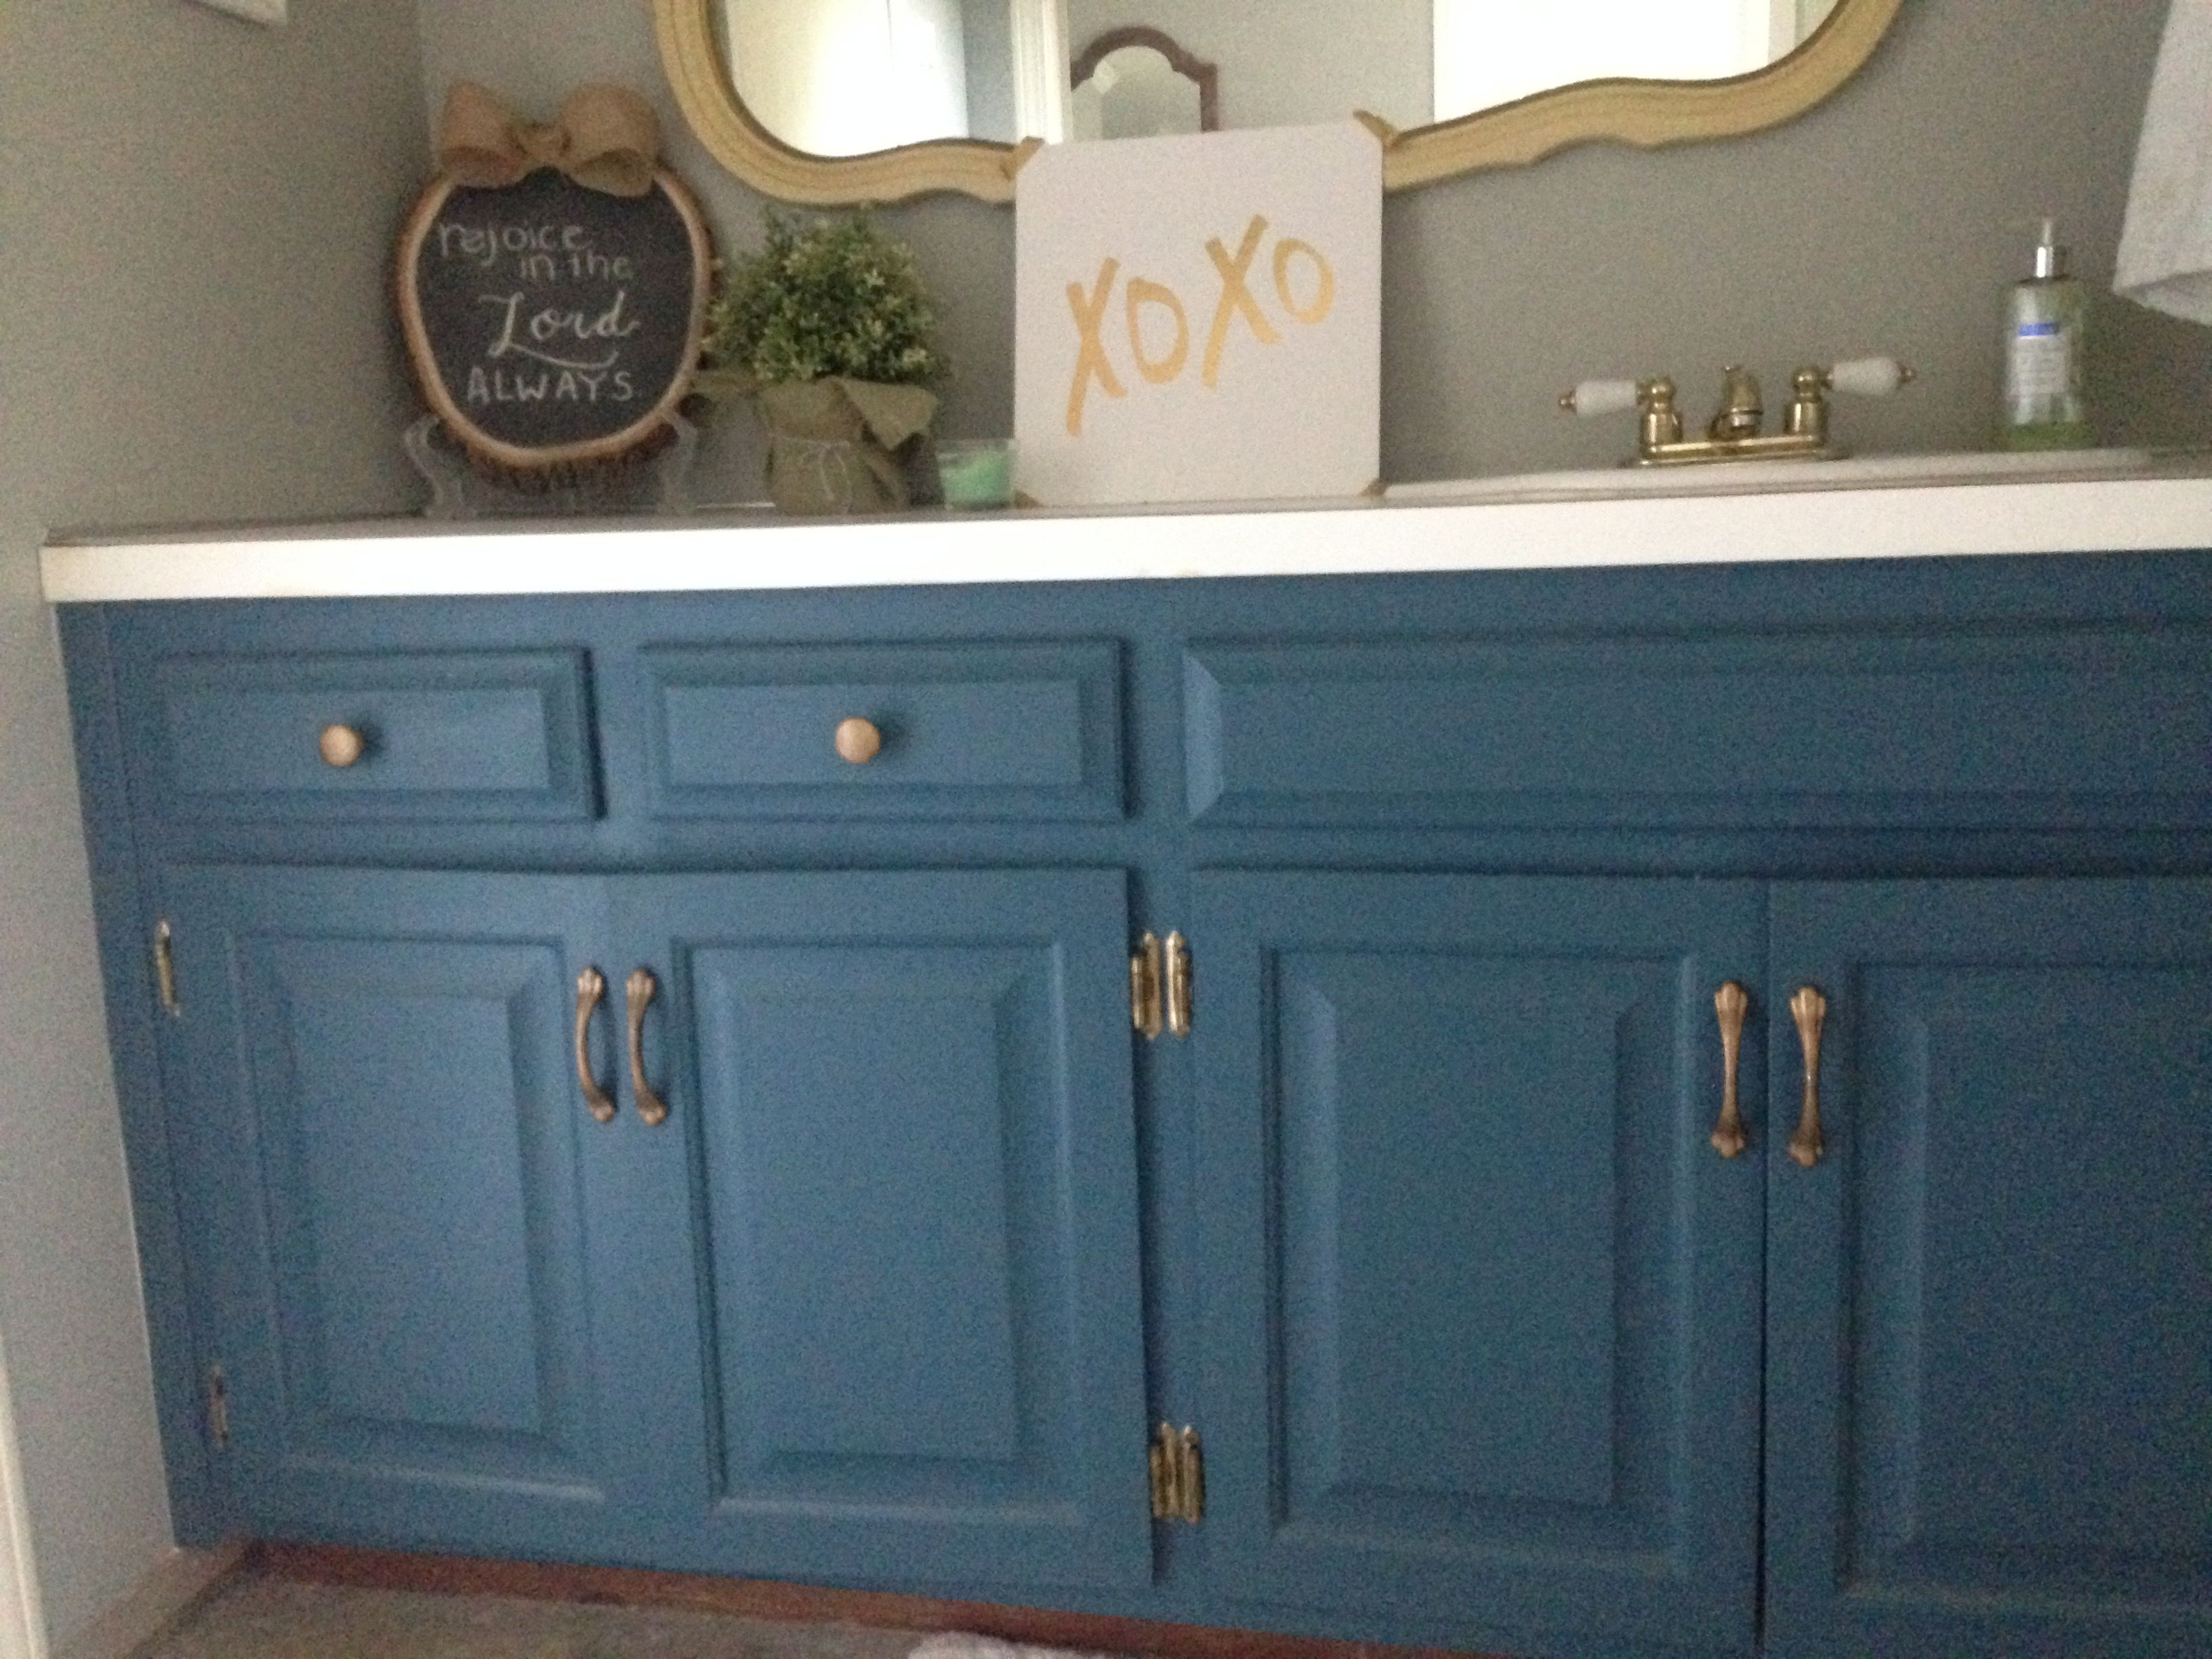 Painting Master Bathroom Vanity With Chalk Paint All Things New regarding  measurements 3264 X 2448 Blue Teal Bathroom Vanity - The key, of course,  would be